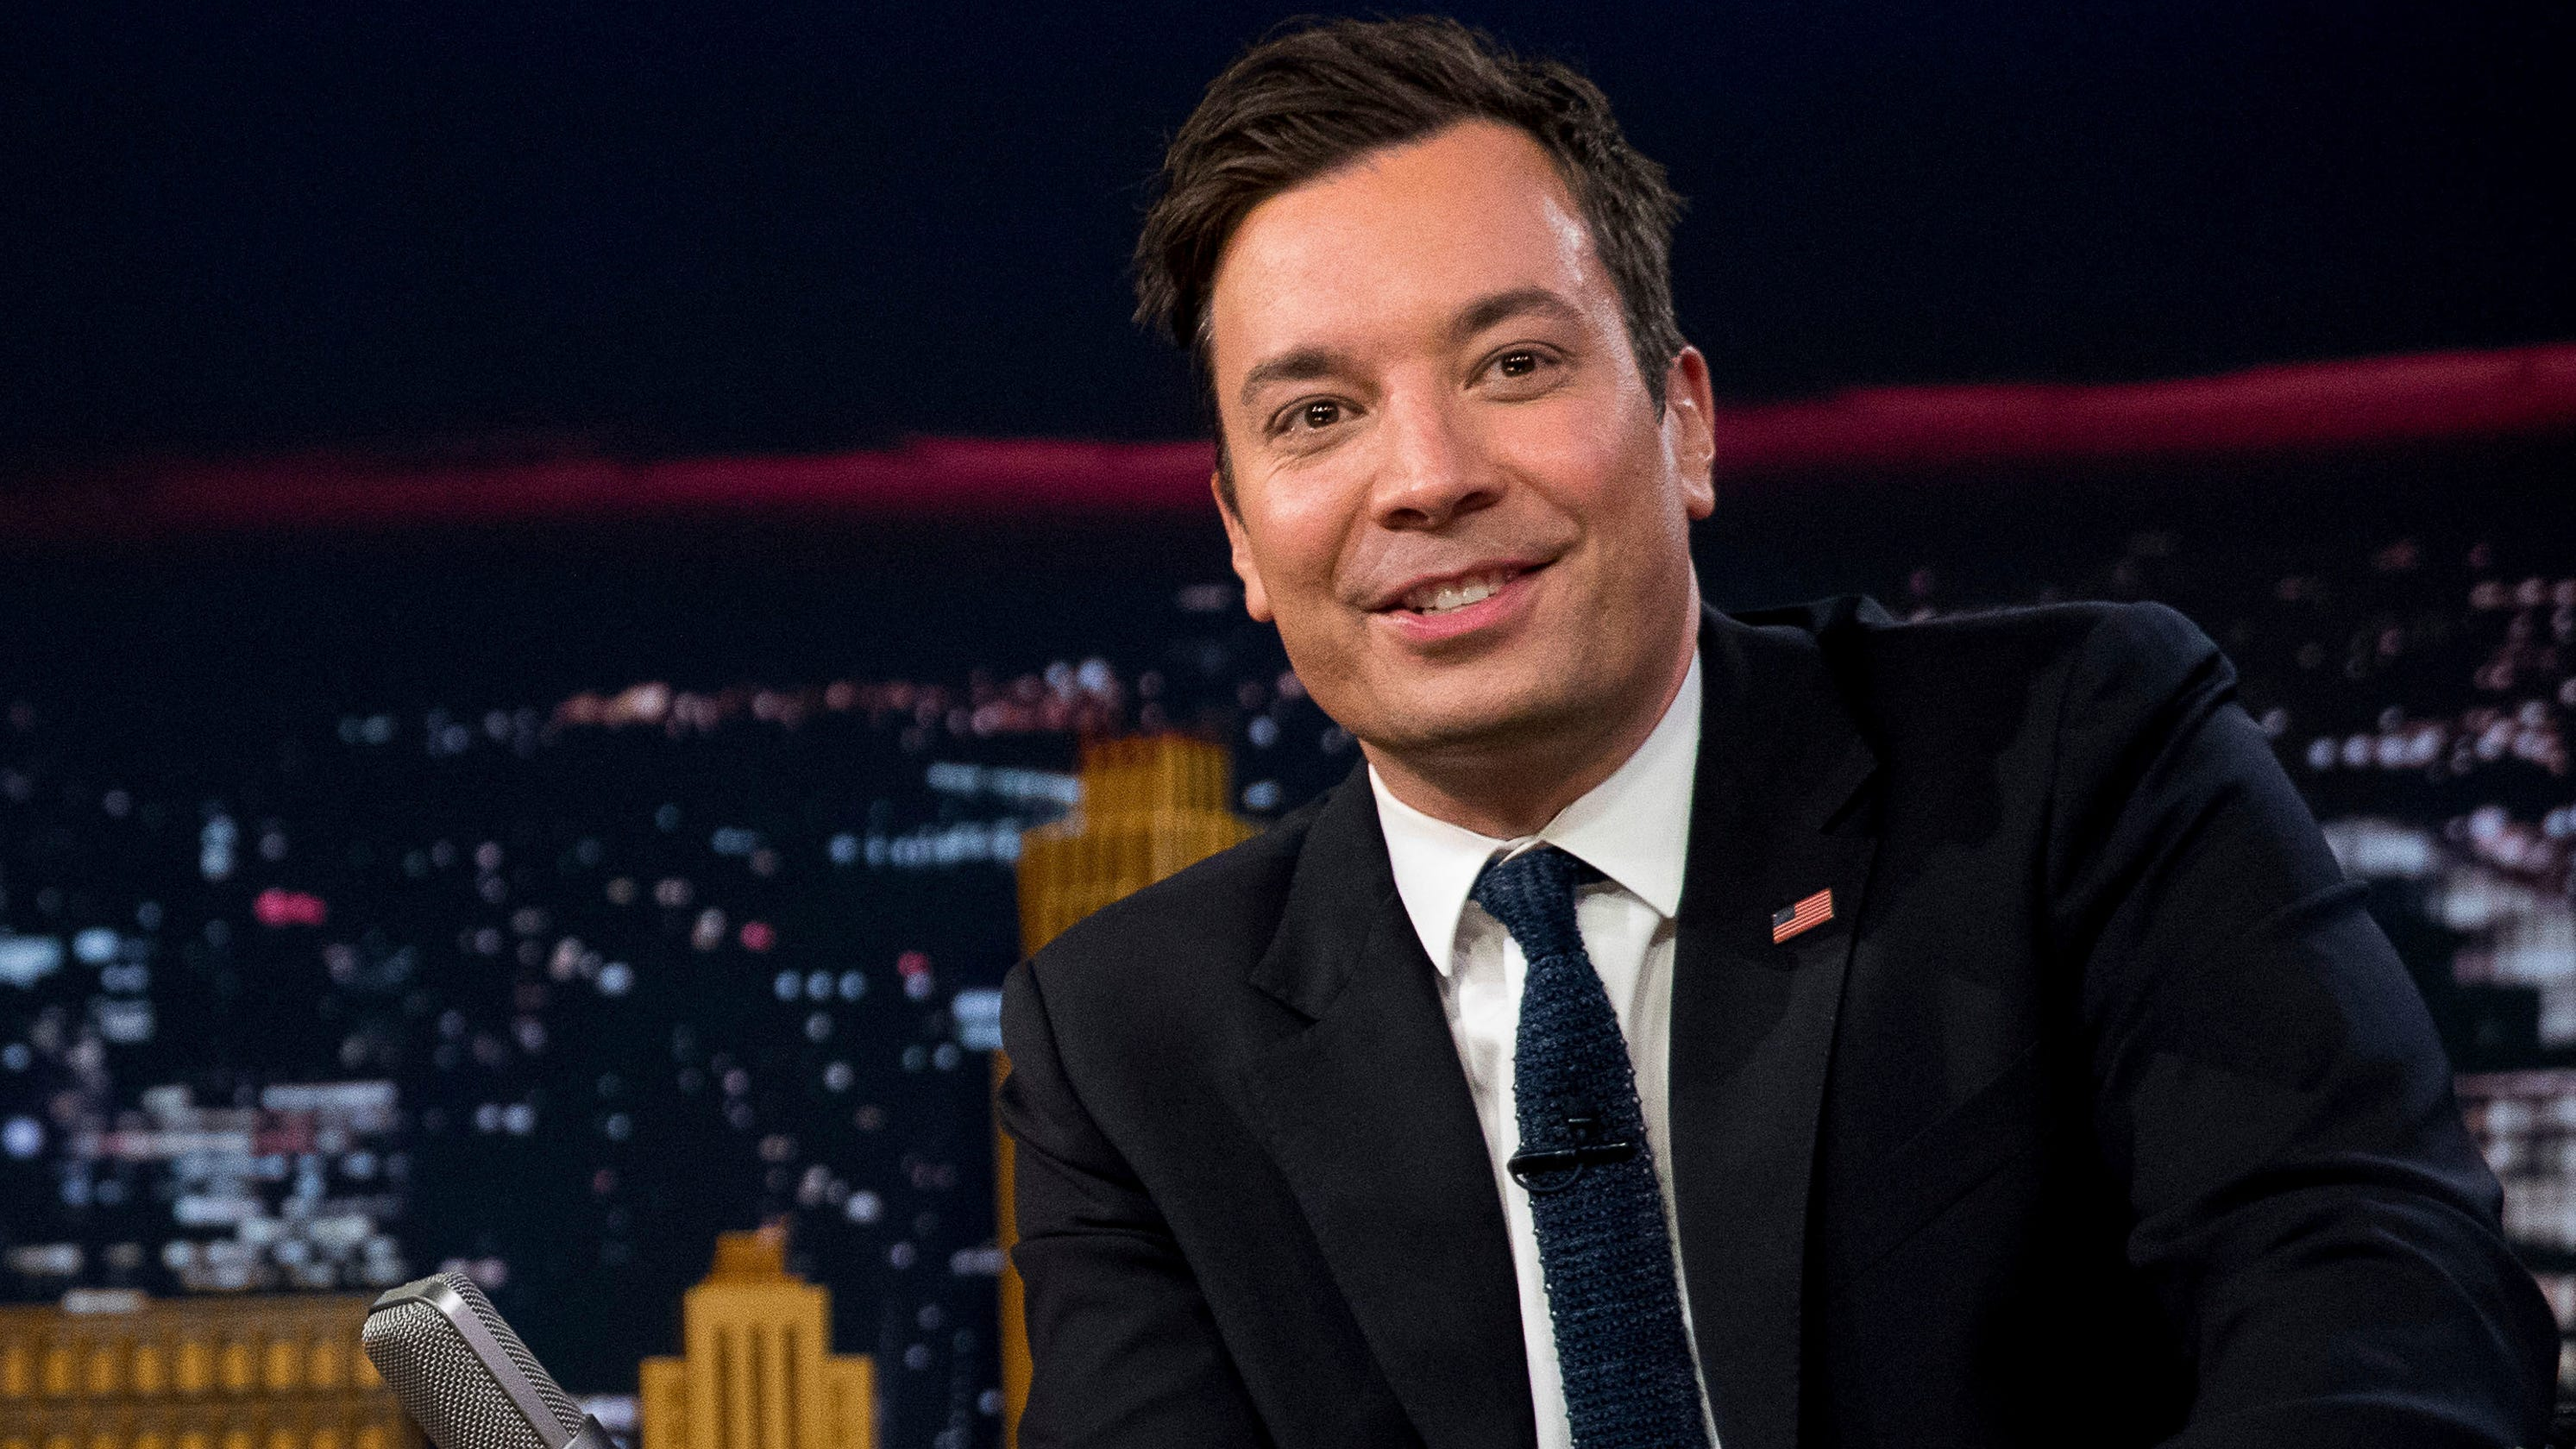 ed3157f5cb2 Samsung Galaxy S10+ used to capture Jimmy Fallon s Monday show